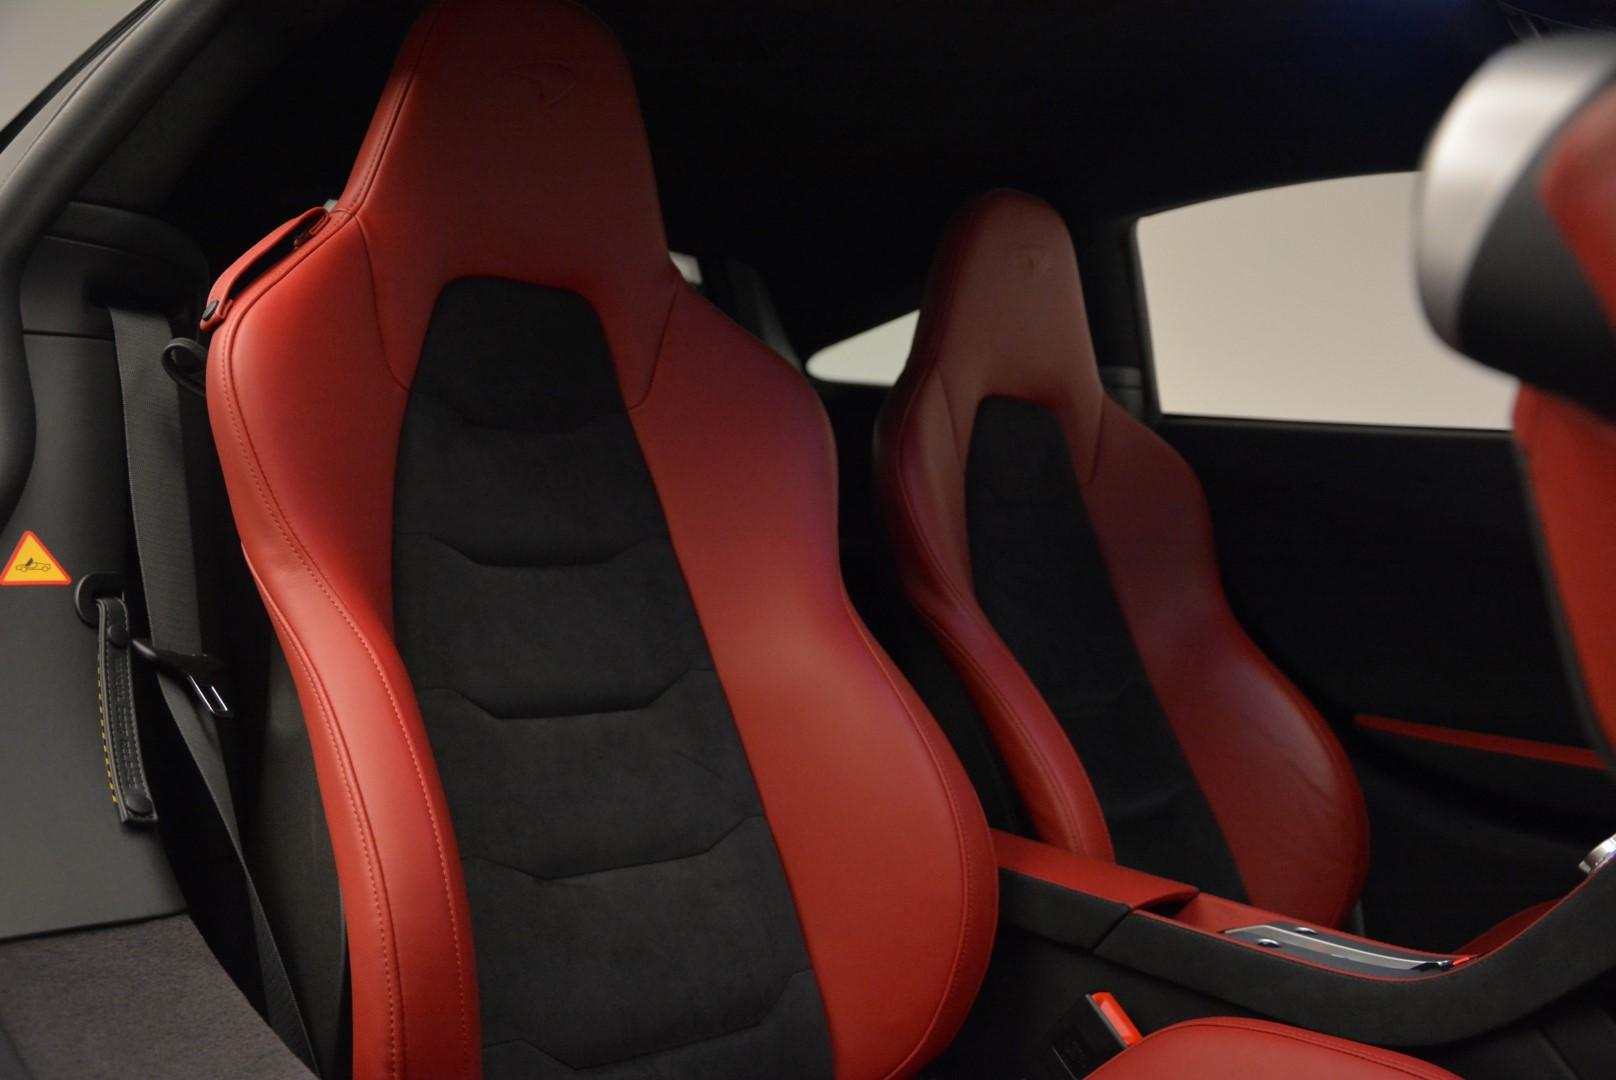 Used 2012 McLaren MP4-12c Coupe For Sale In Greenwich, CT. Alfa Romeo of Greenwich, 3155 70_p20